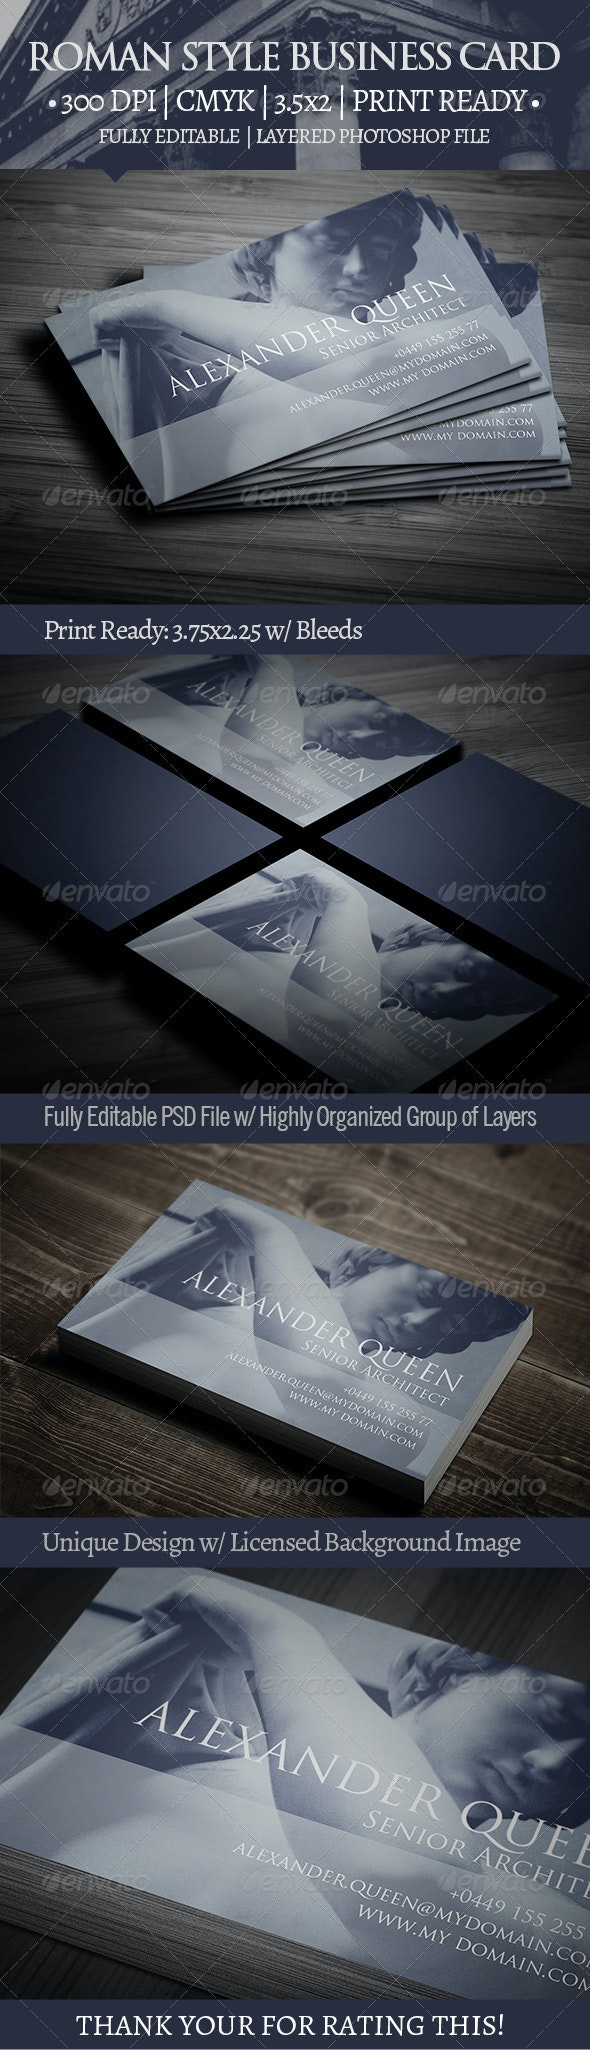 Roman Style Business Card - Creative Business Cards